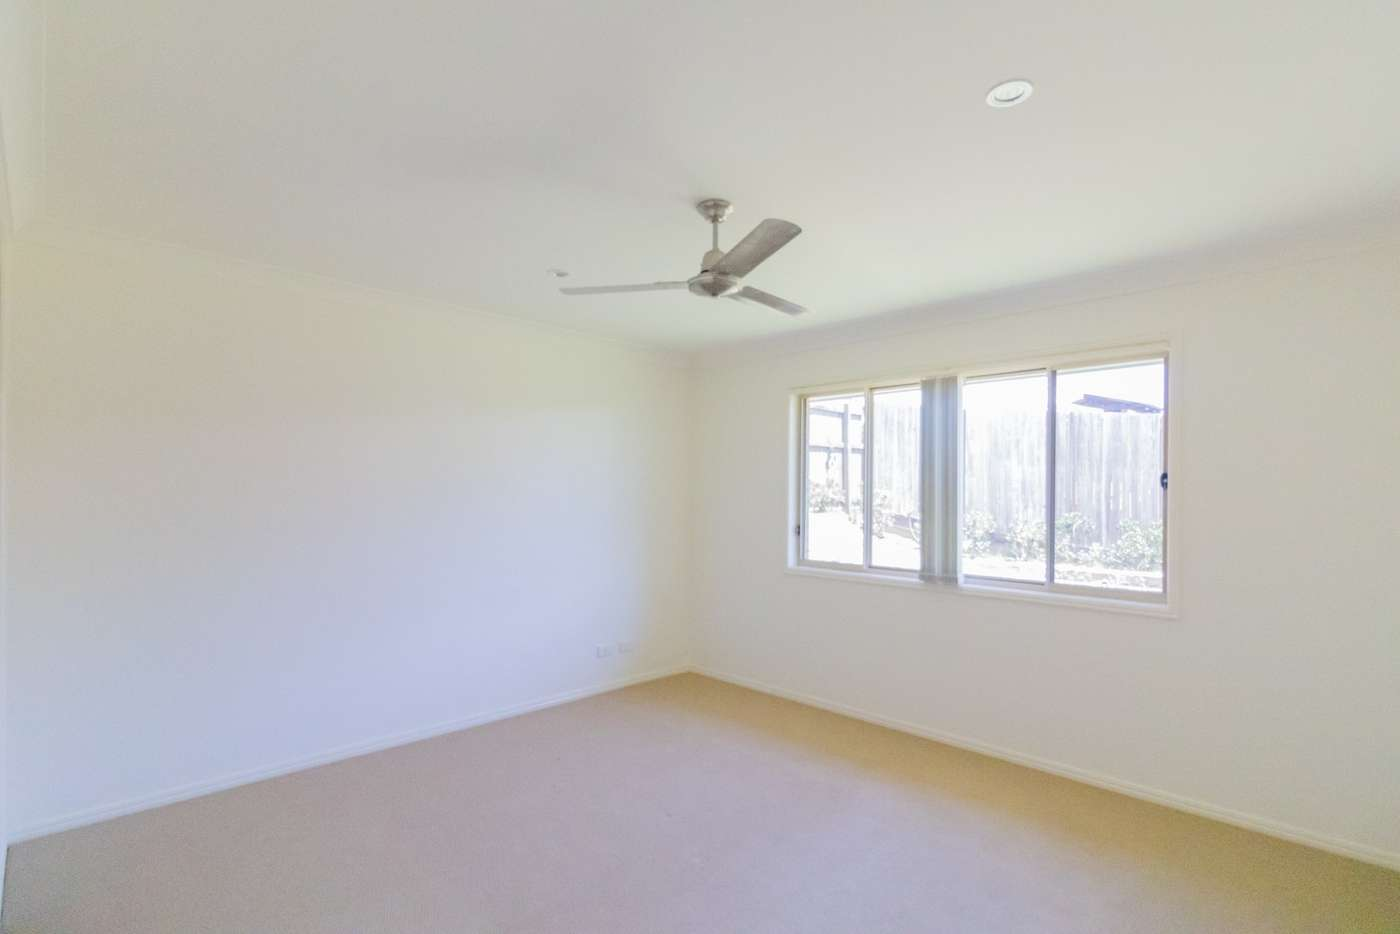 Sixth view of Homely house listing, 6 Hermitage Close, Pimpama QLD 4209